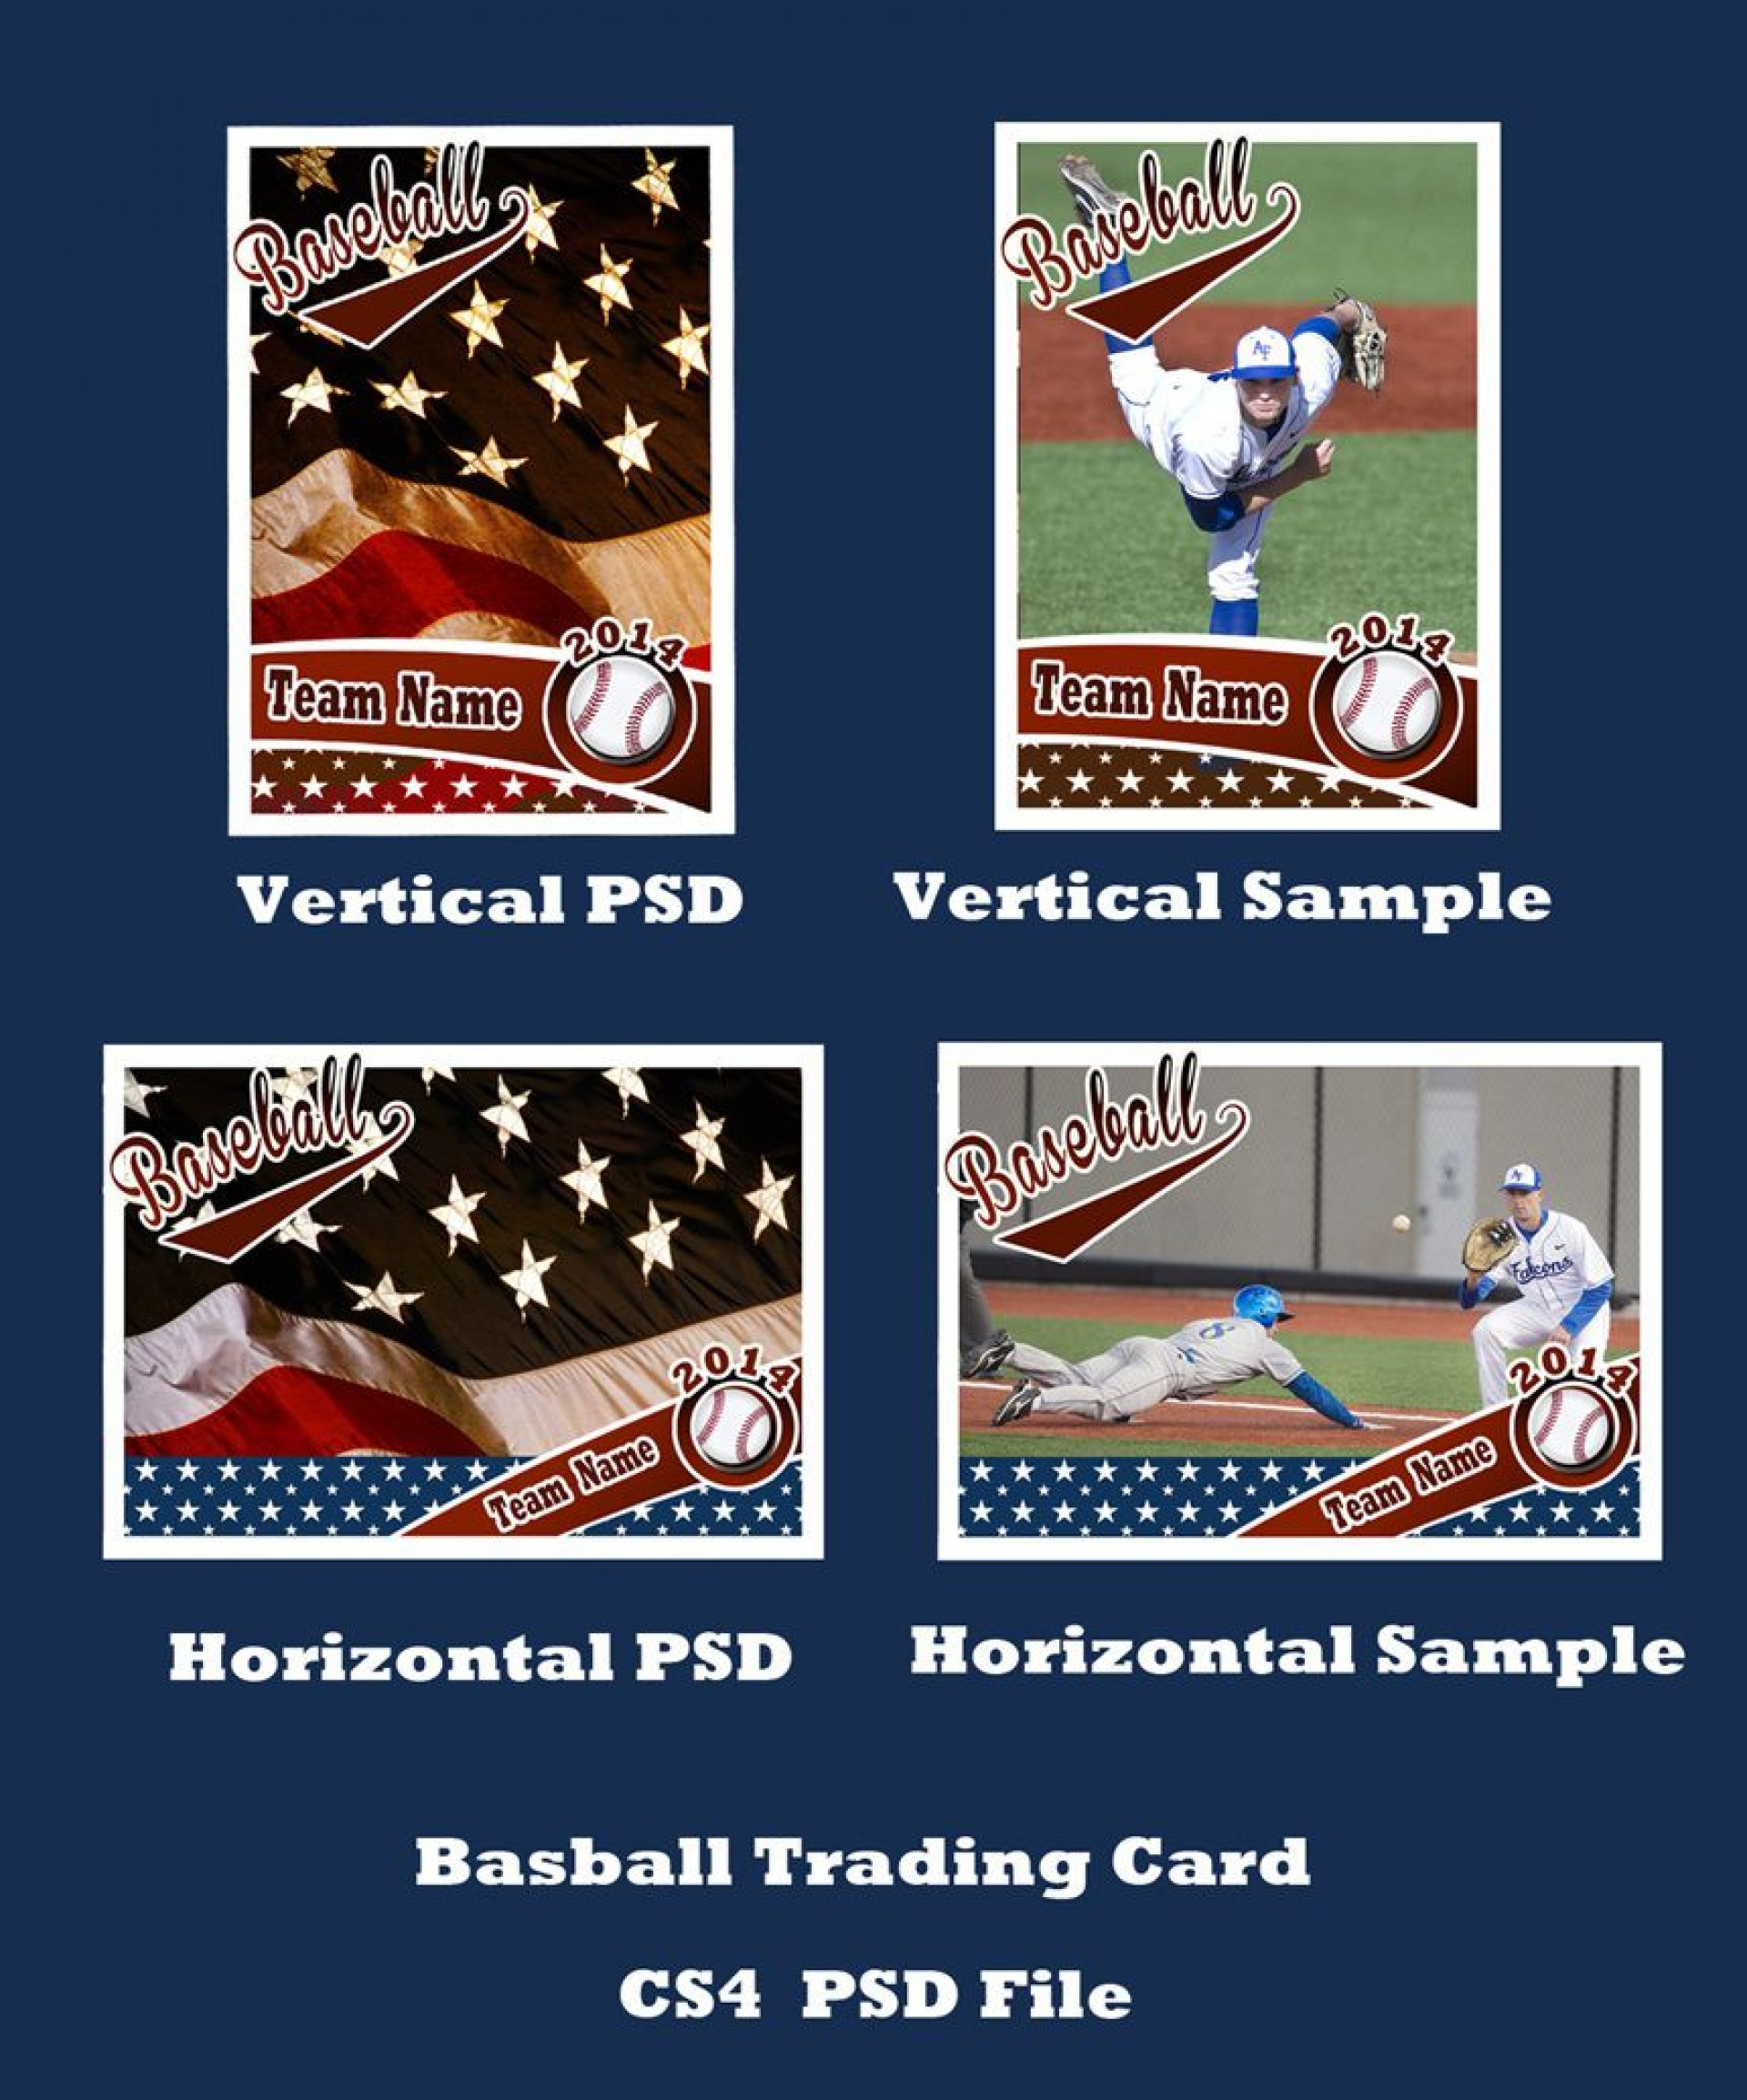 007 Staggering Baseball Card Template Photoshop Highest Clarity  Topp Free1920